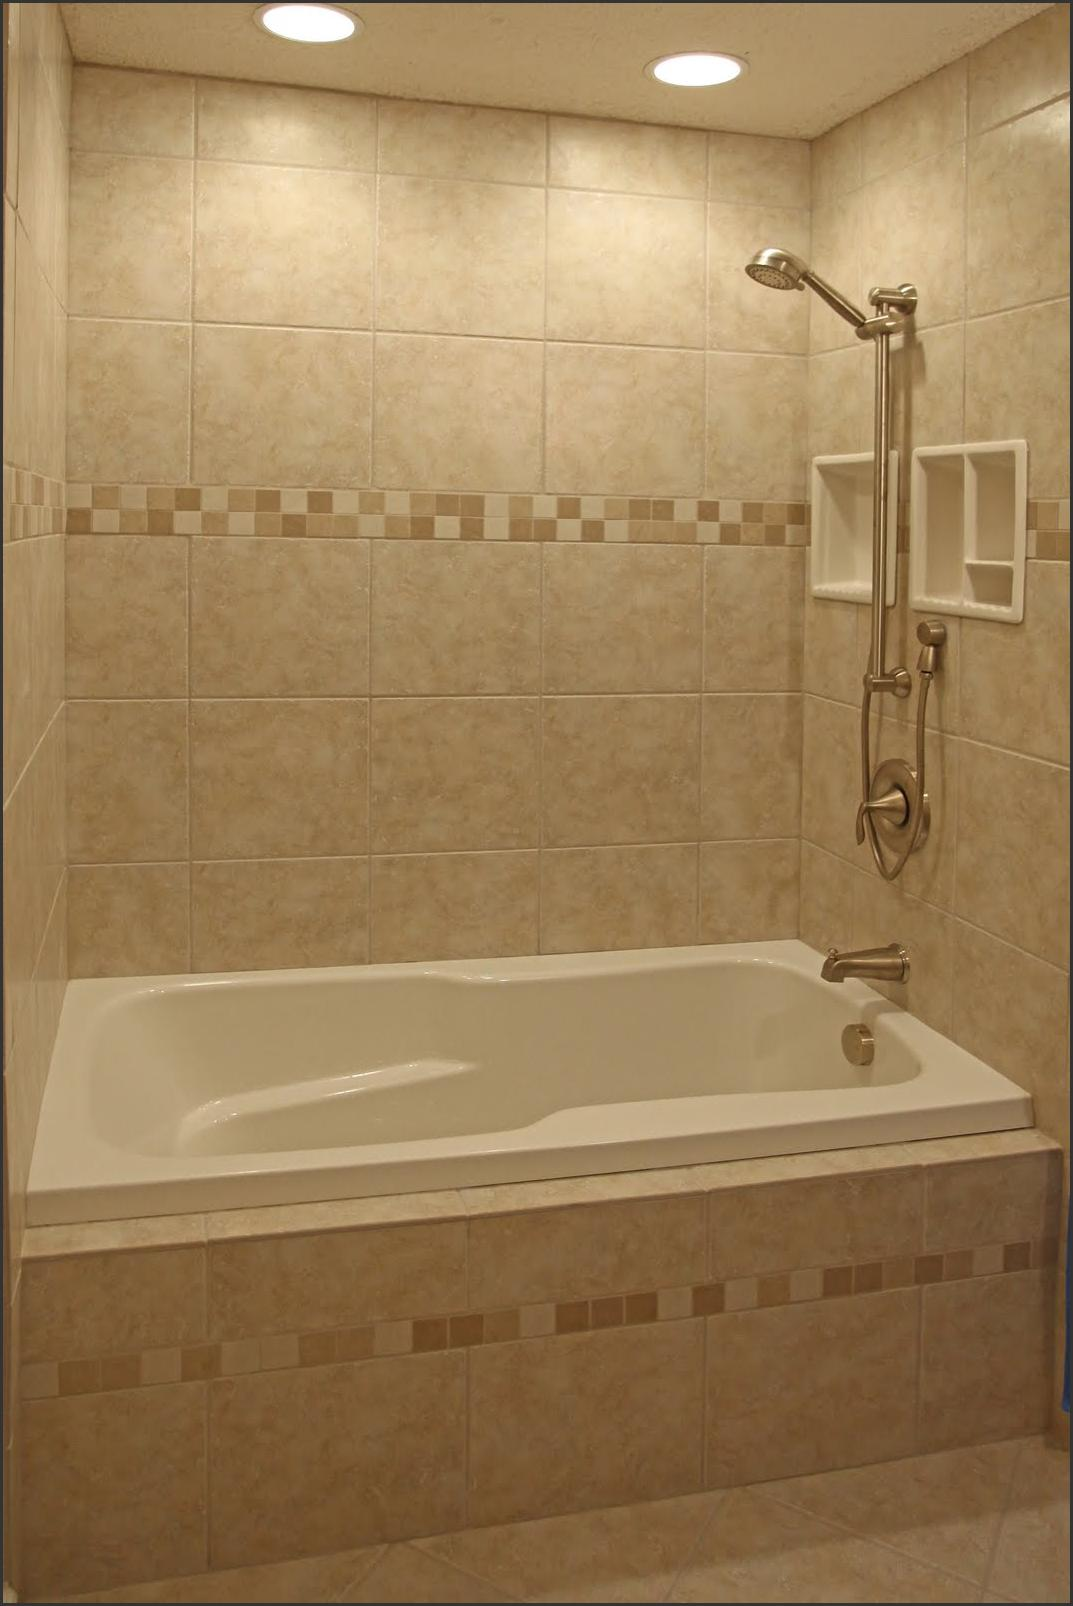 antique-tile-bathroom-shower-design-ideas-ceramic-tile-bathroom-shower